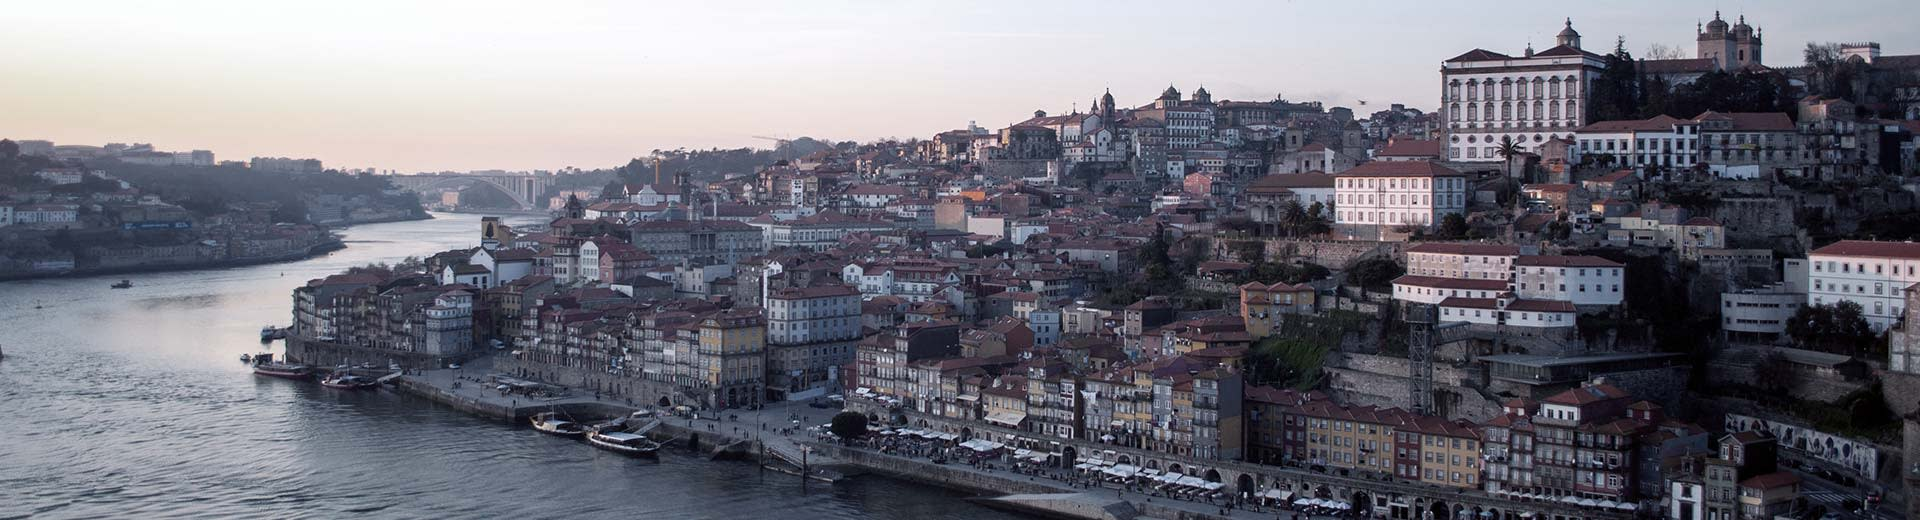 The beautiful city of Porto, with historic buildings set against a grey sky and flowing river